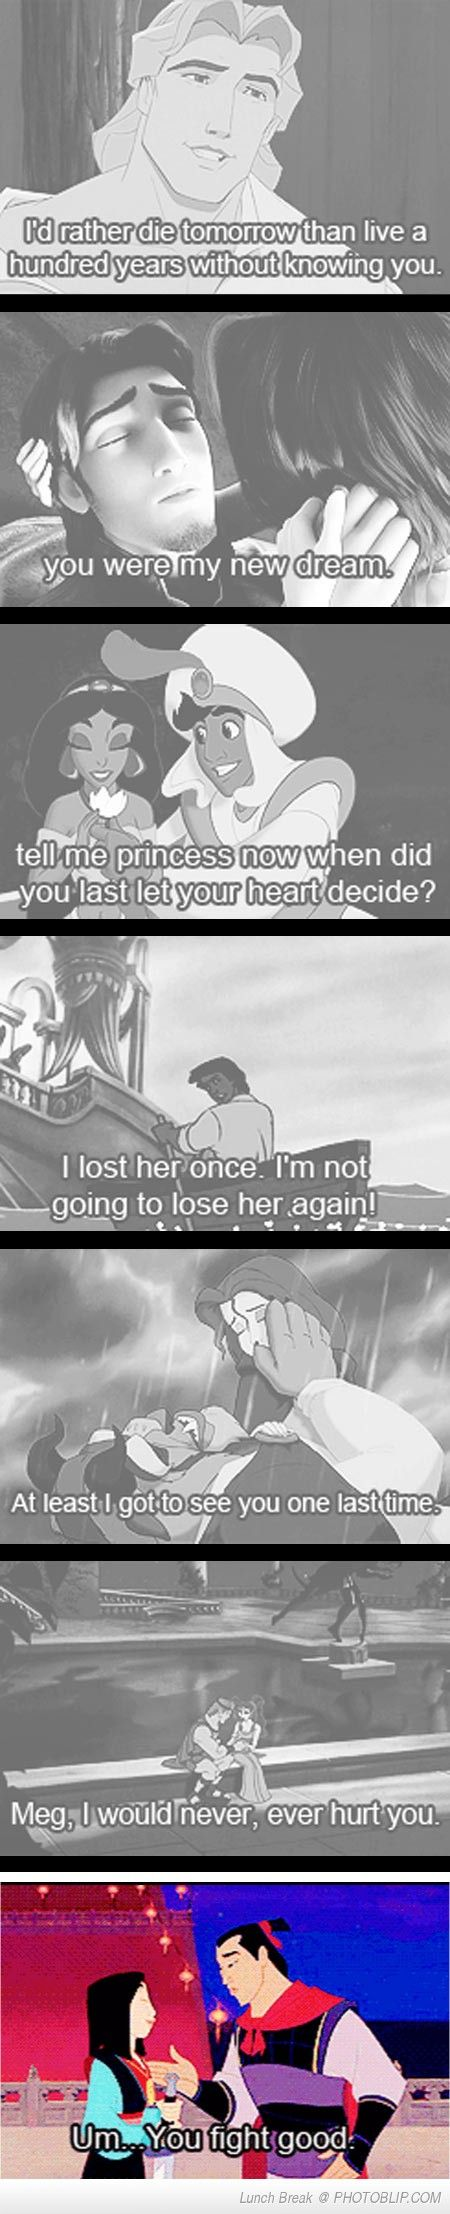 Mulan-Then only Disney movie that shows how it truly is